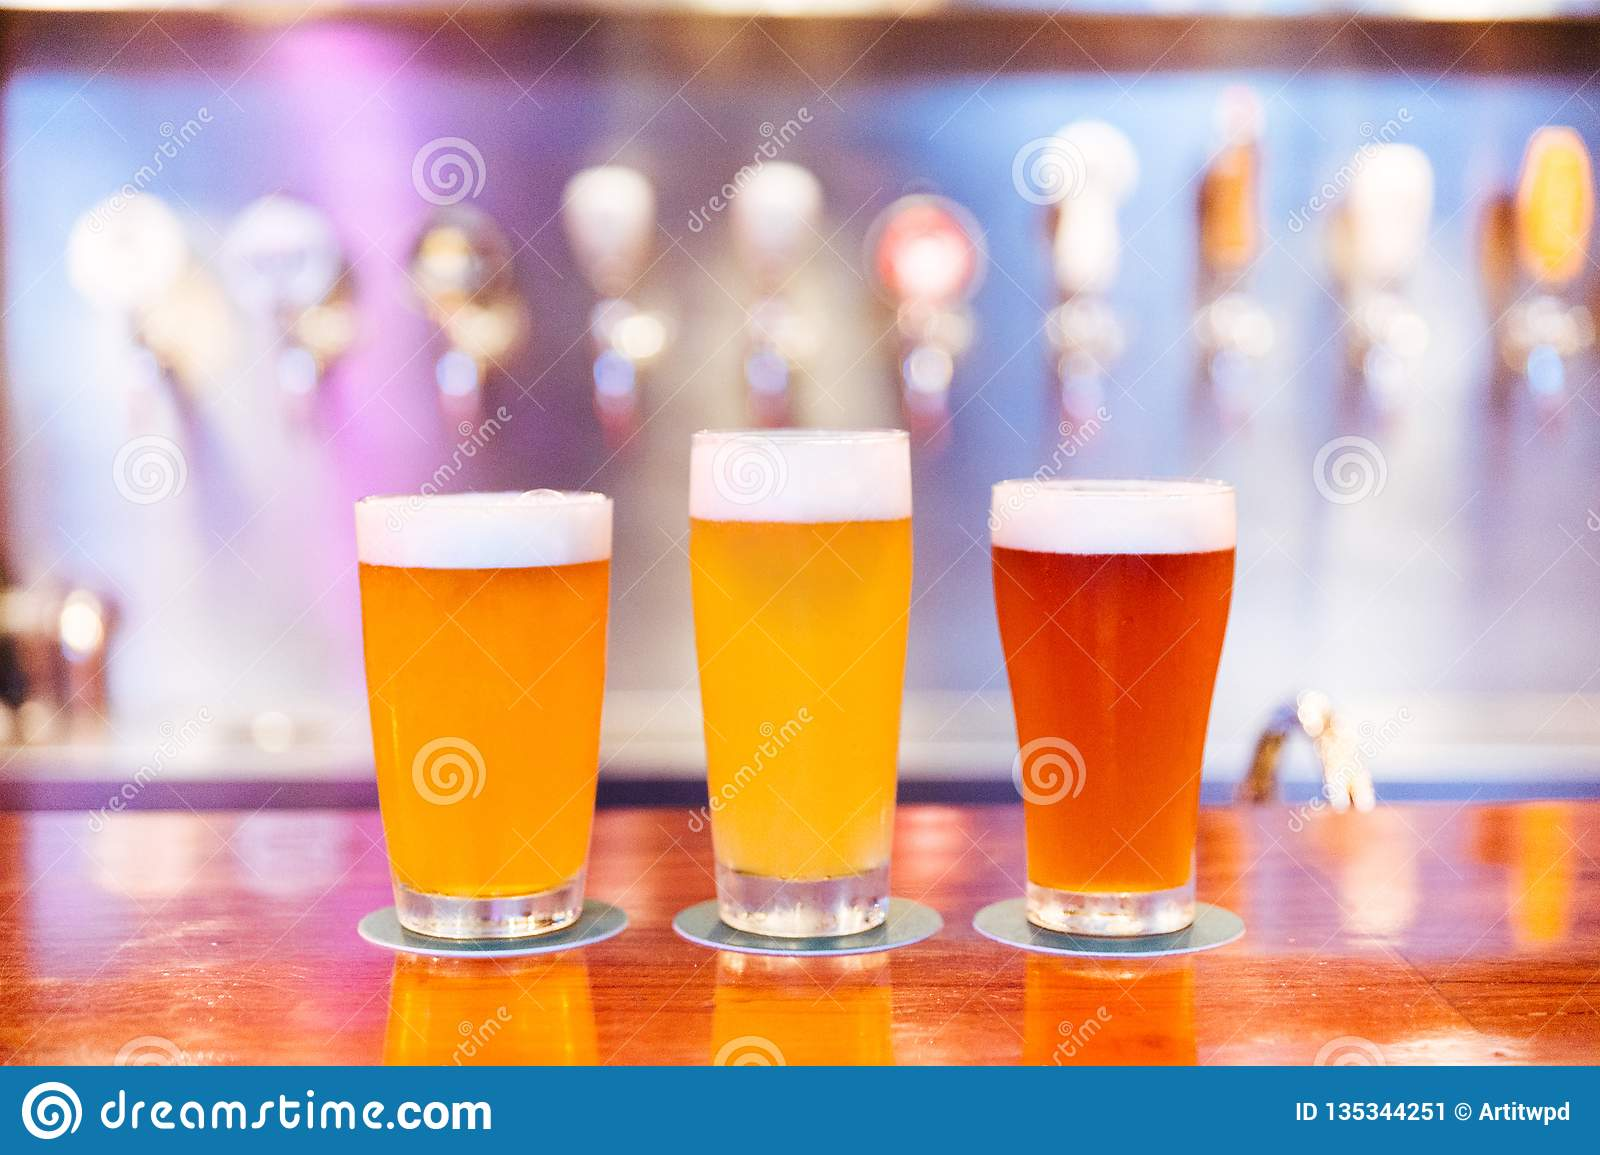 Three glasses of craft beer with foam and different colors from light to dark on wooden counter with blur and bokeh.